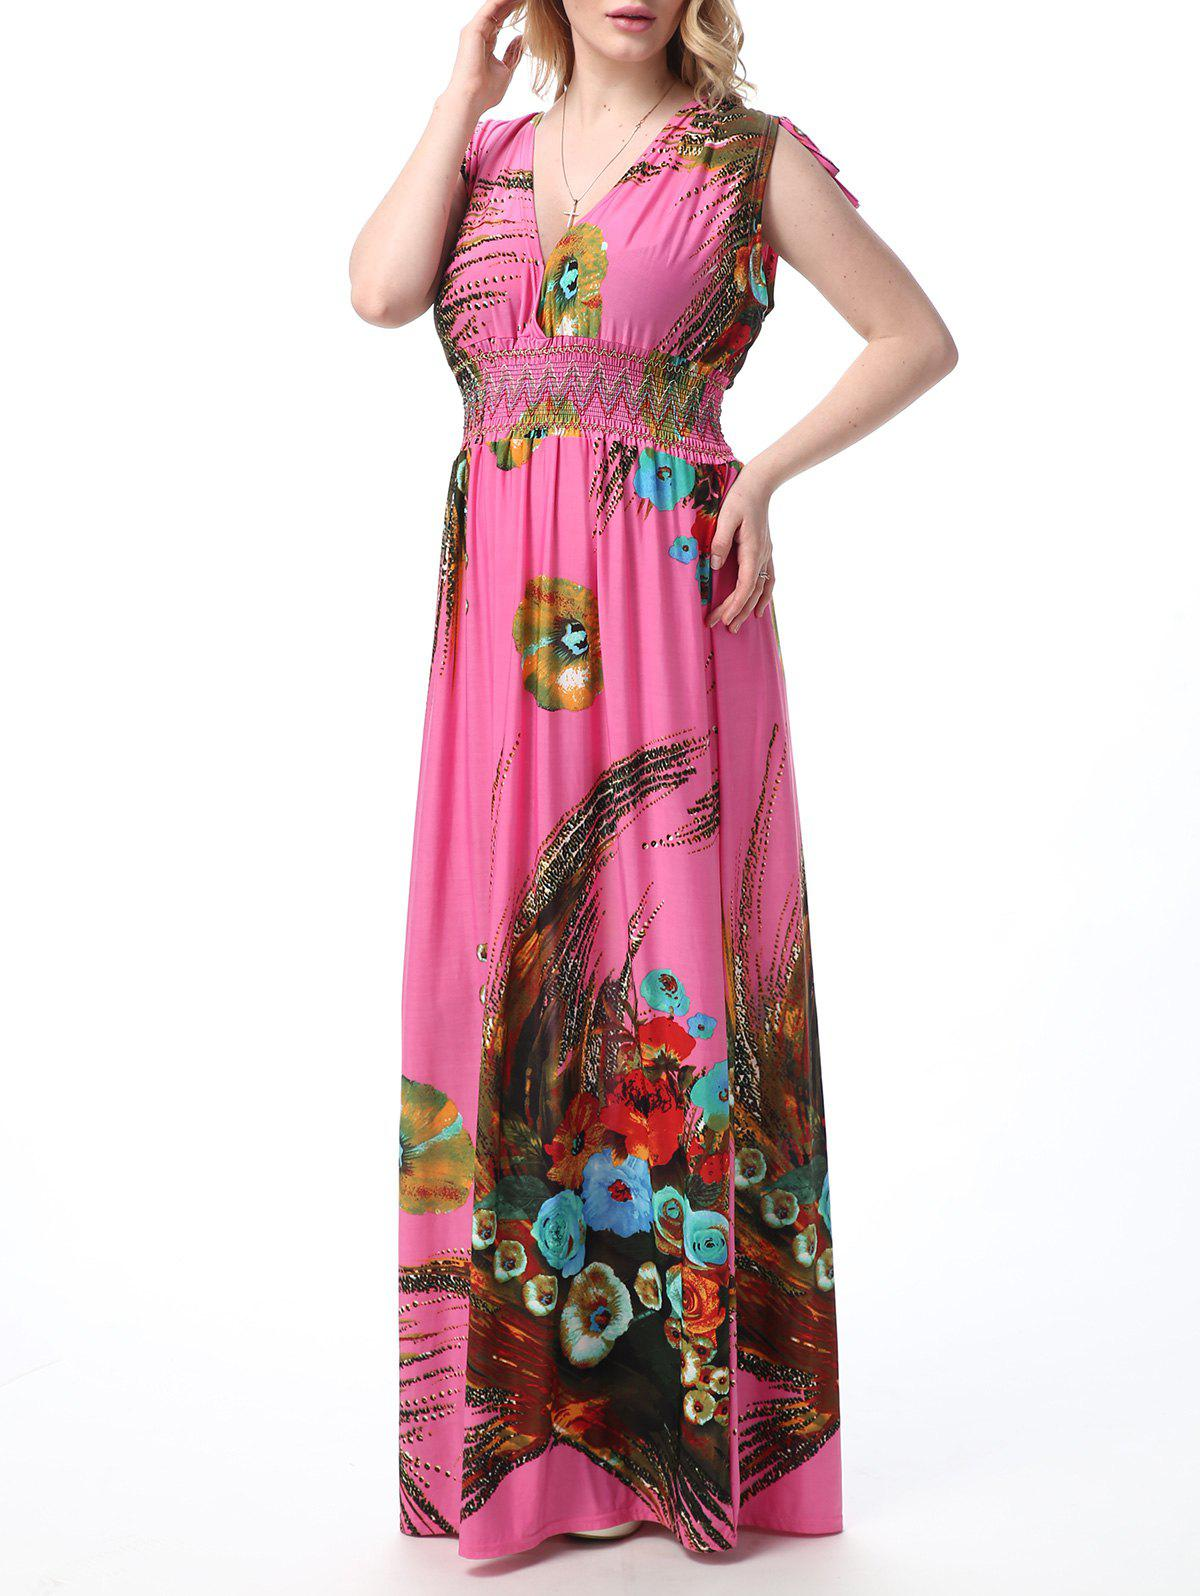 Floral Print Empire Waist Floor Length Boho Dress - PINK 5XL